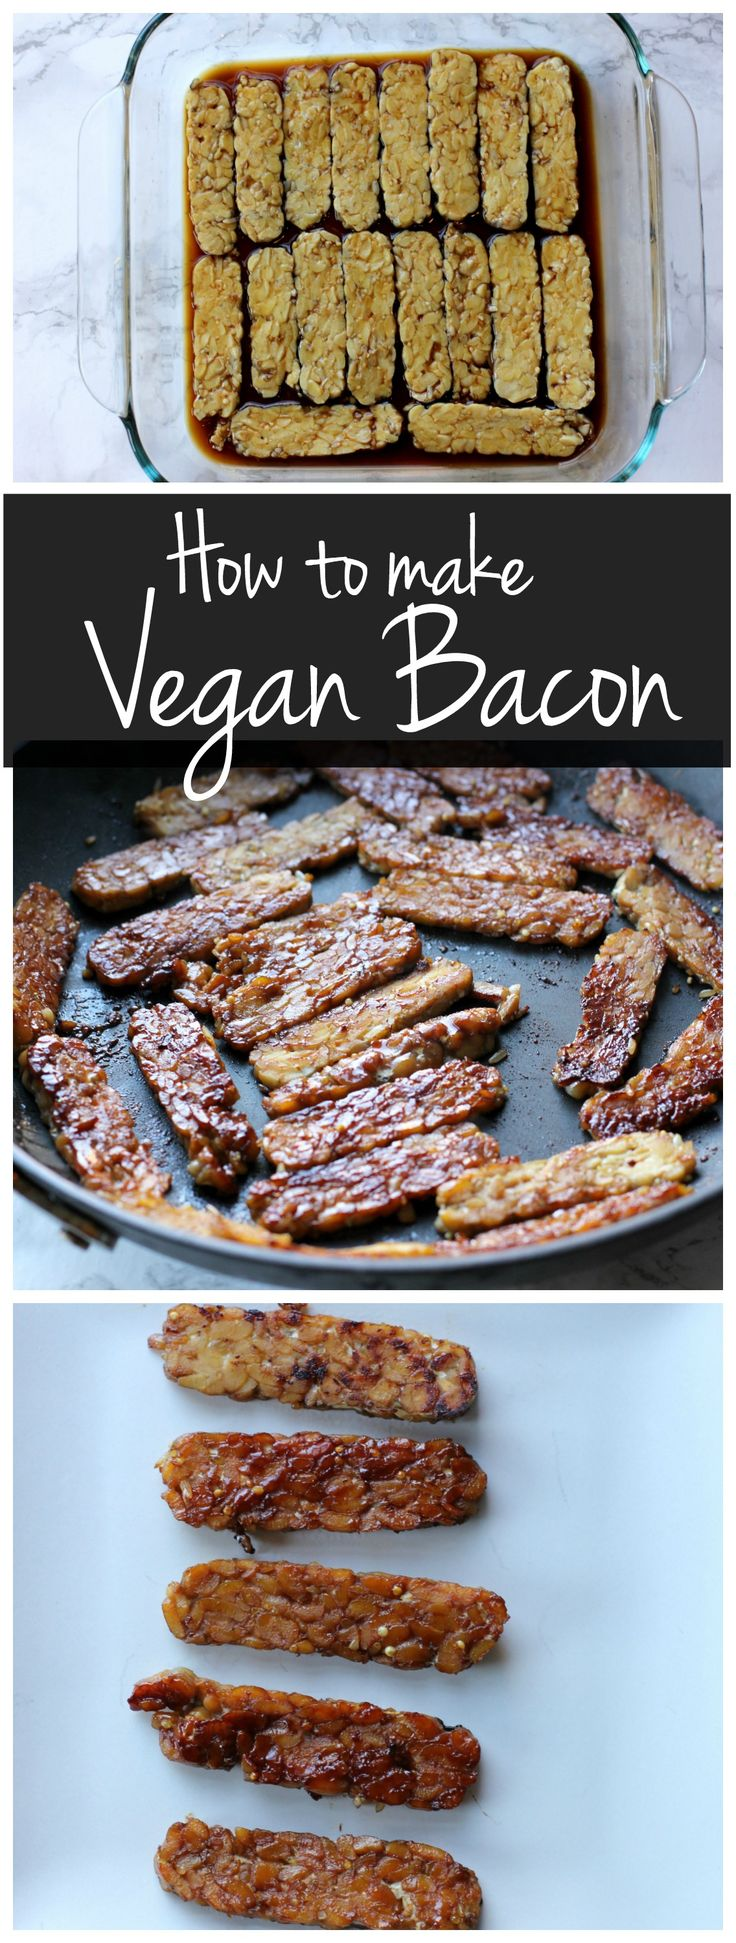 This vegan tempeh bacon is crispy, smokey, and delicious! Learn how to make it in a few easy steps!